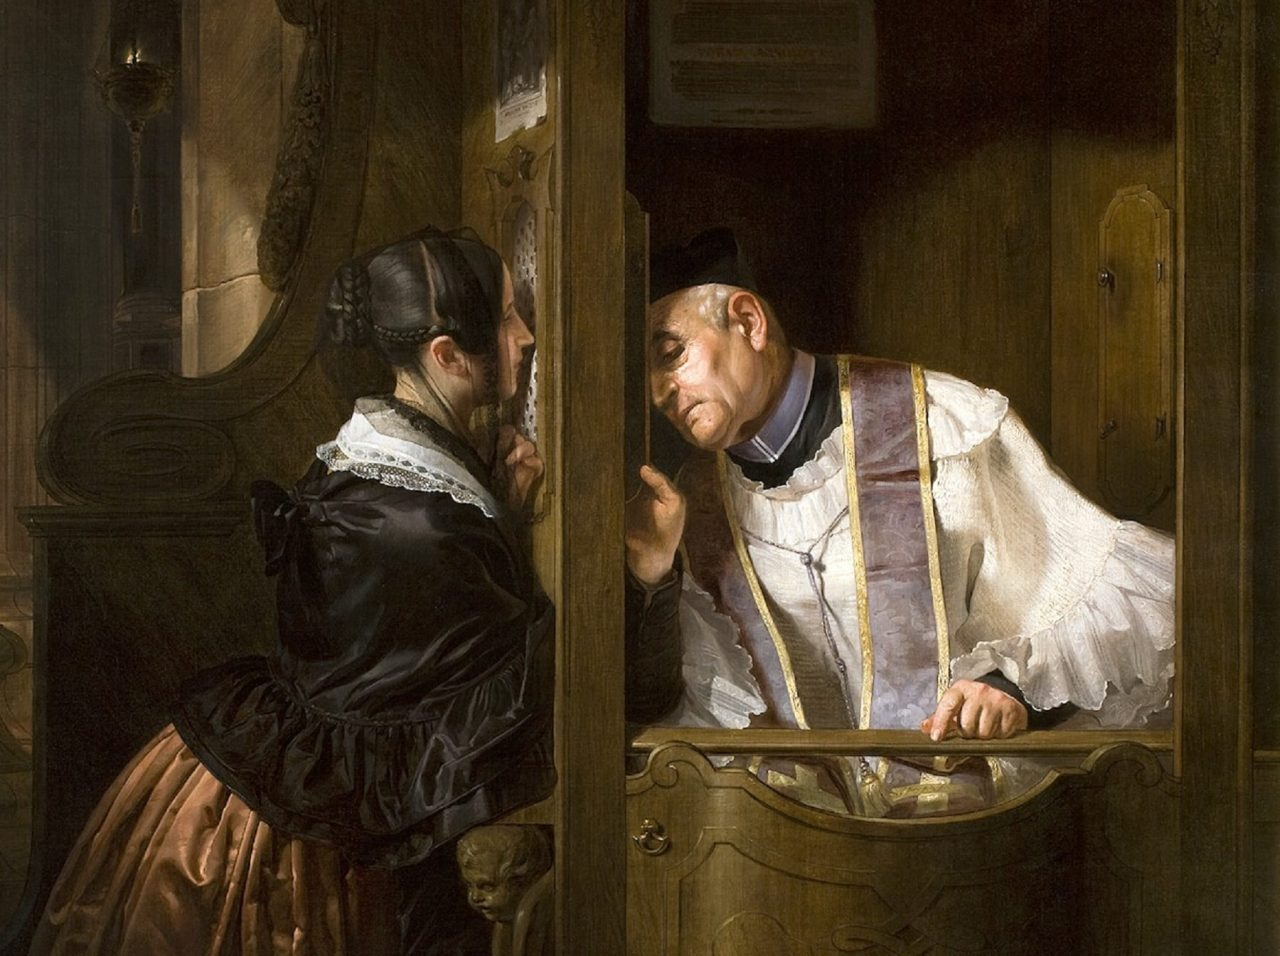 Why do Catholics confess their sins to a Priest?